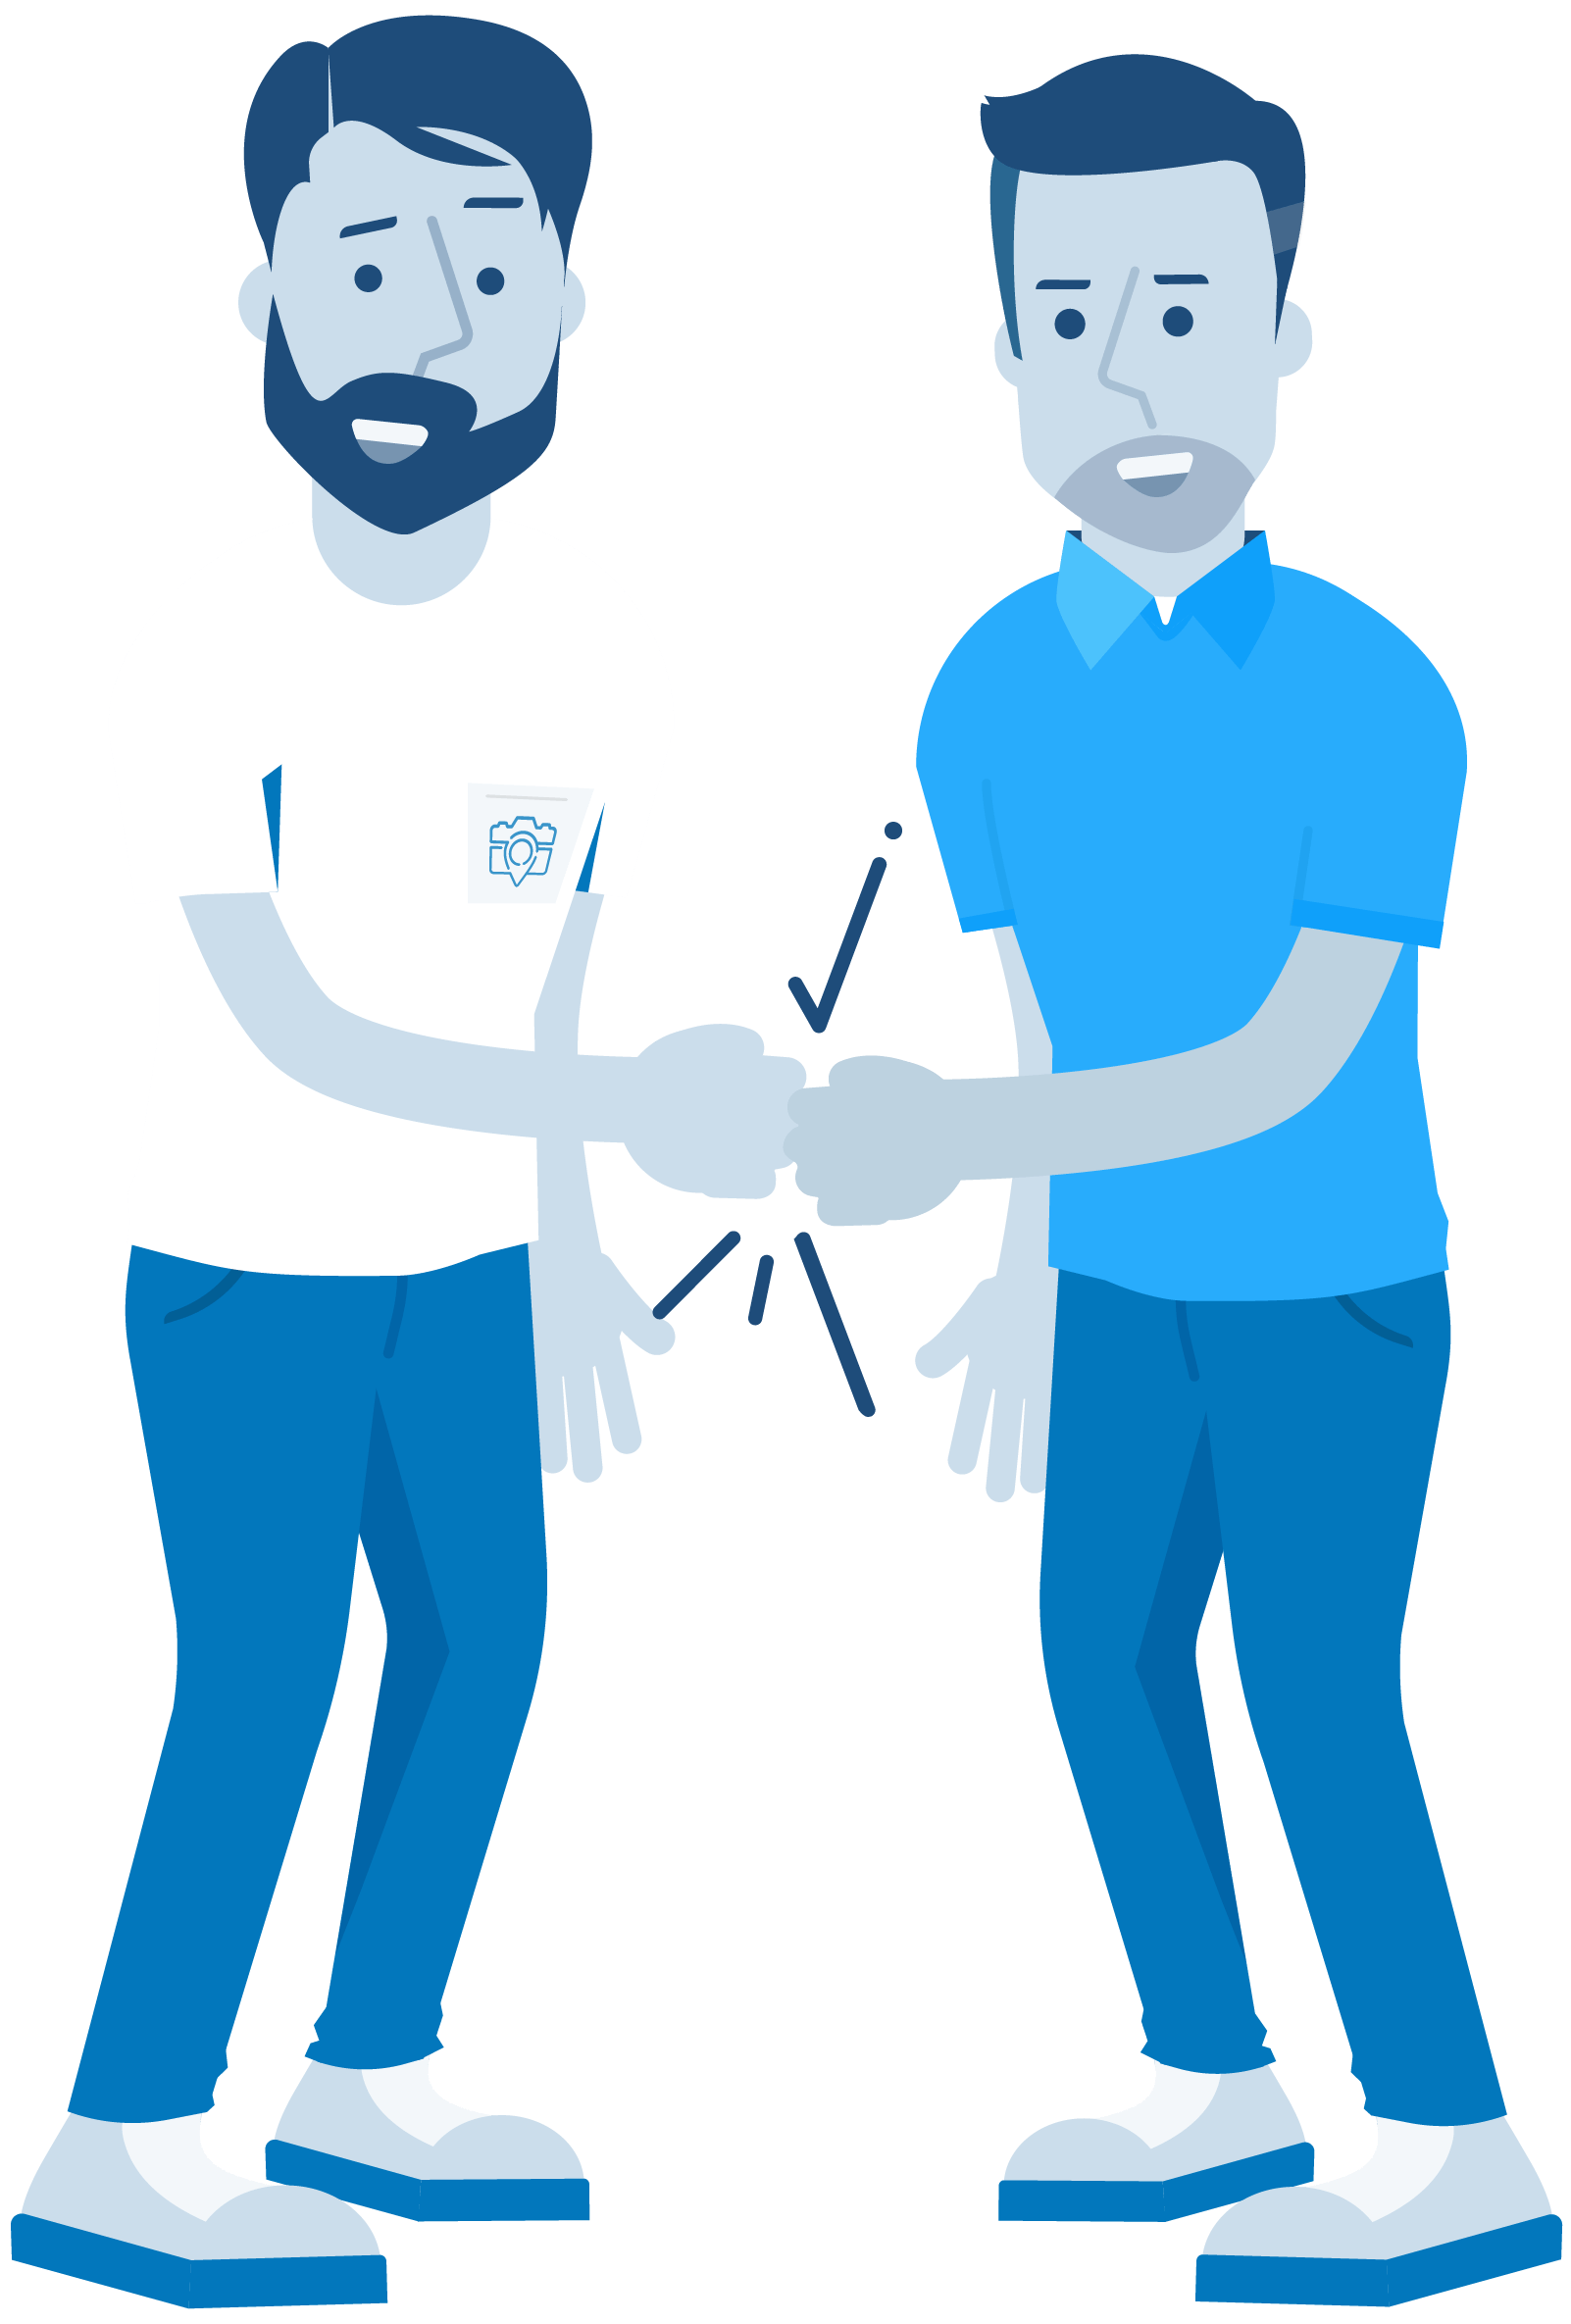 CompanyCam Parternship Illustration